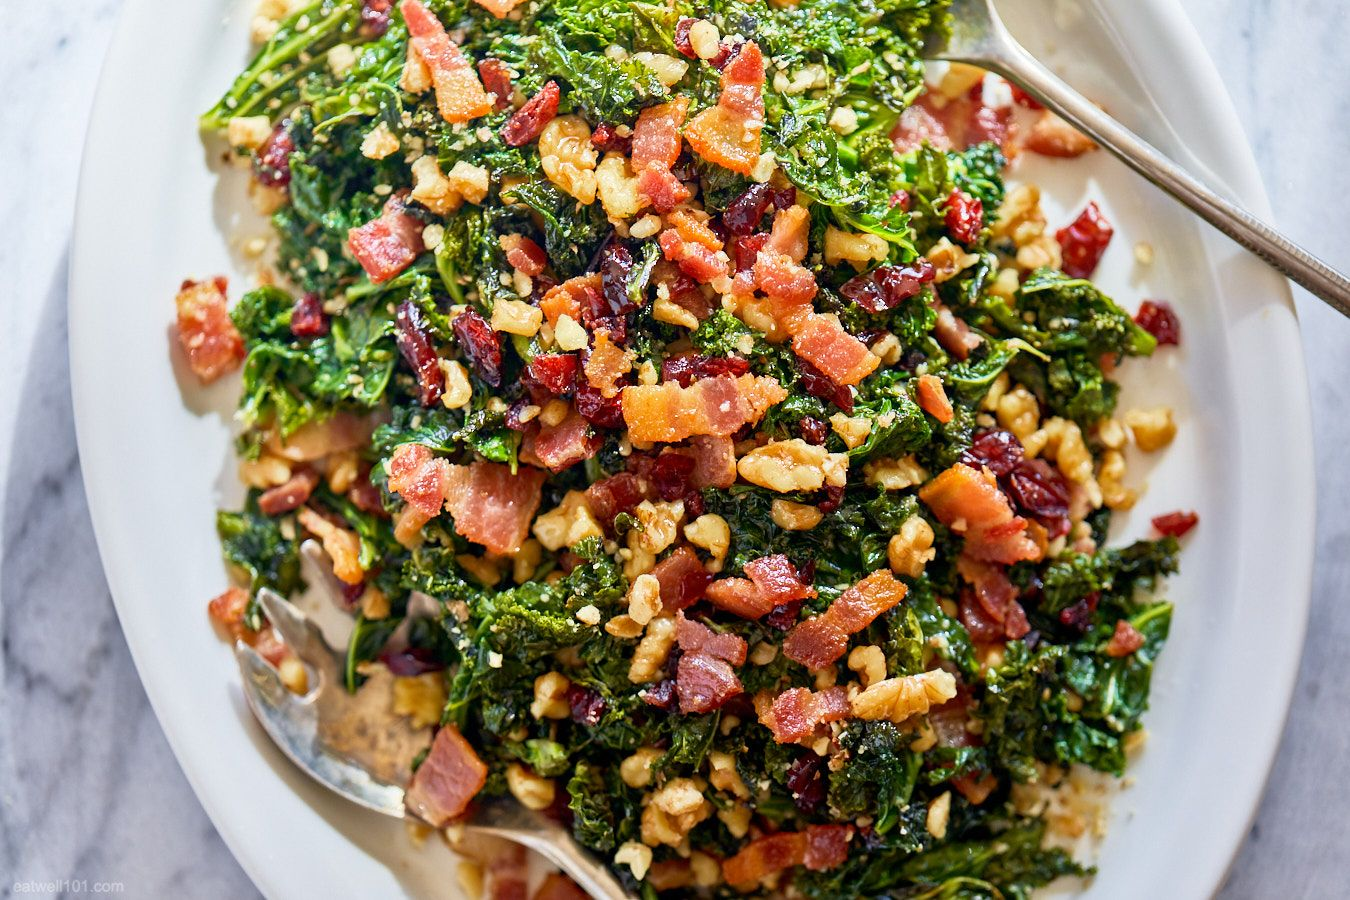 Healthy Sautéed Kale Salad with Bacon, Walnuts and Cranberries